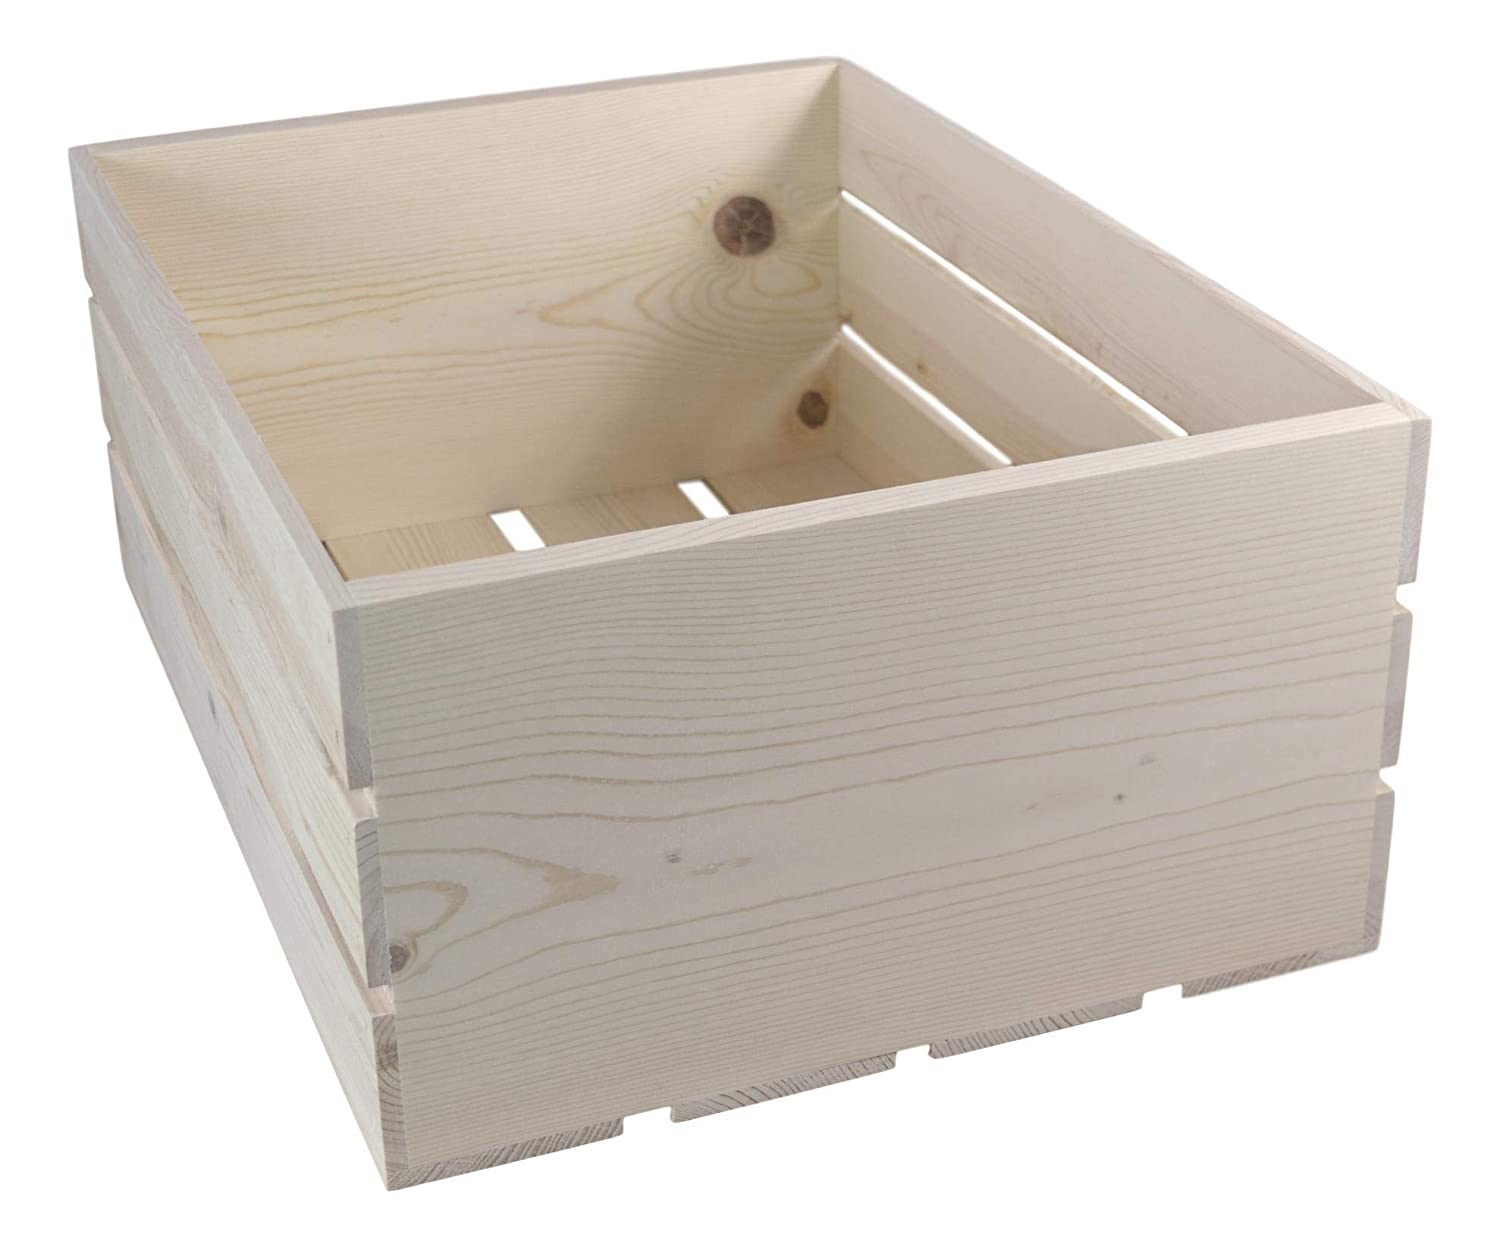 Wooden Crate, 22×16.25×9.25 Inches Outside Dimensions